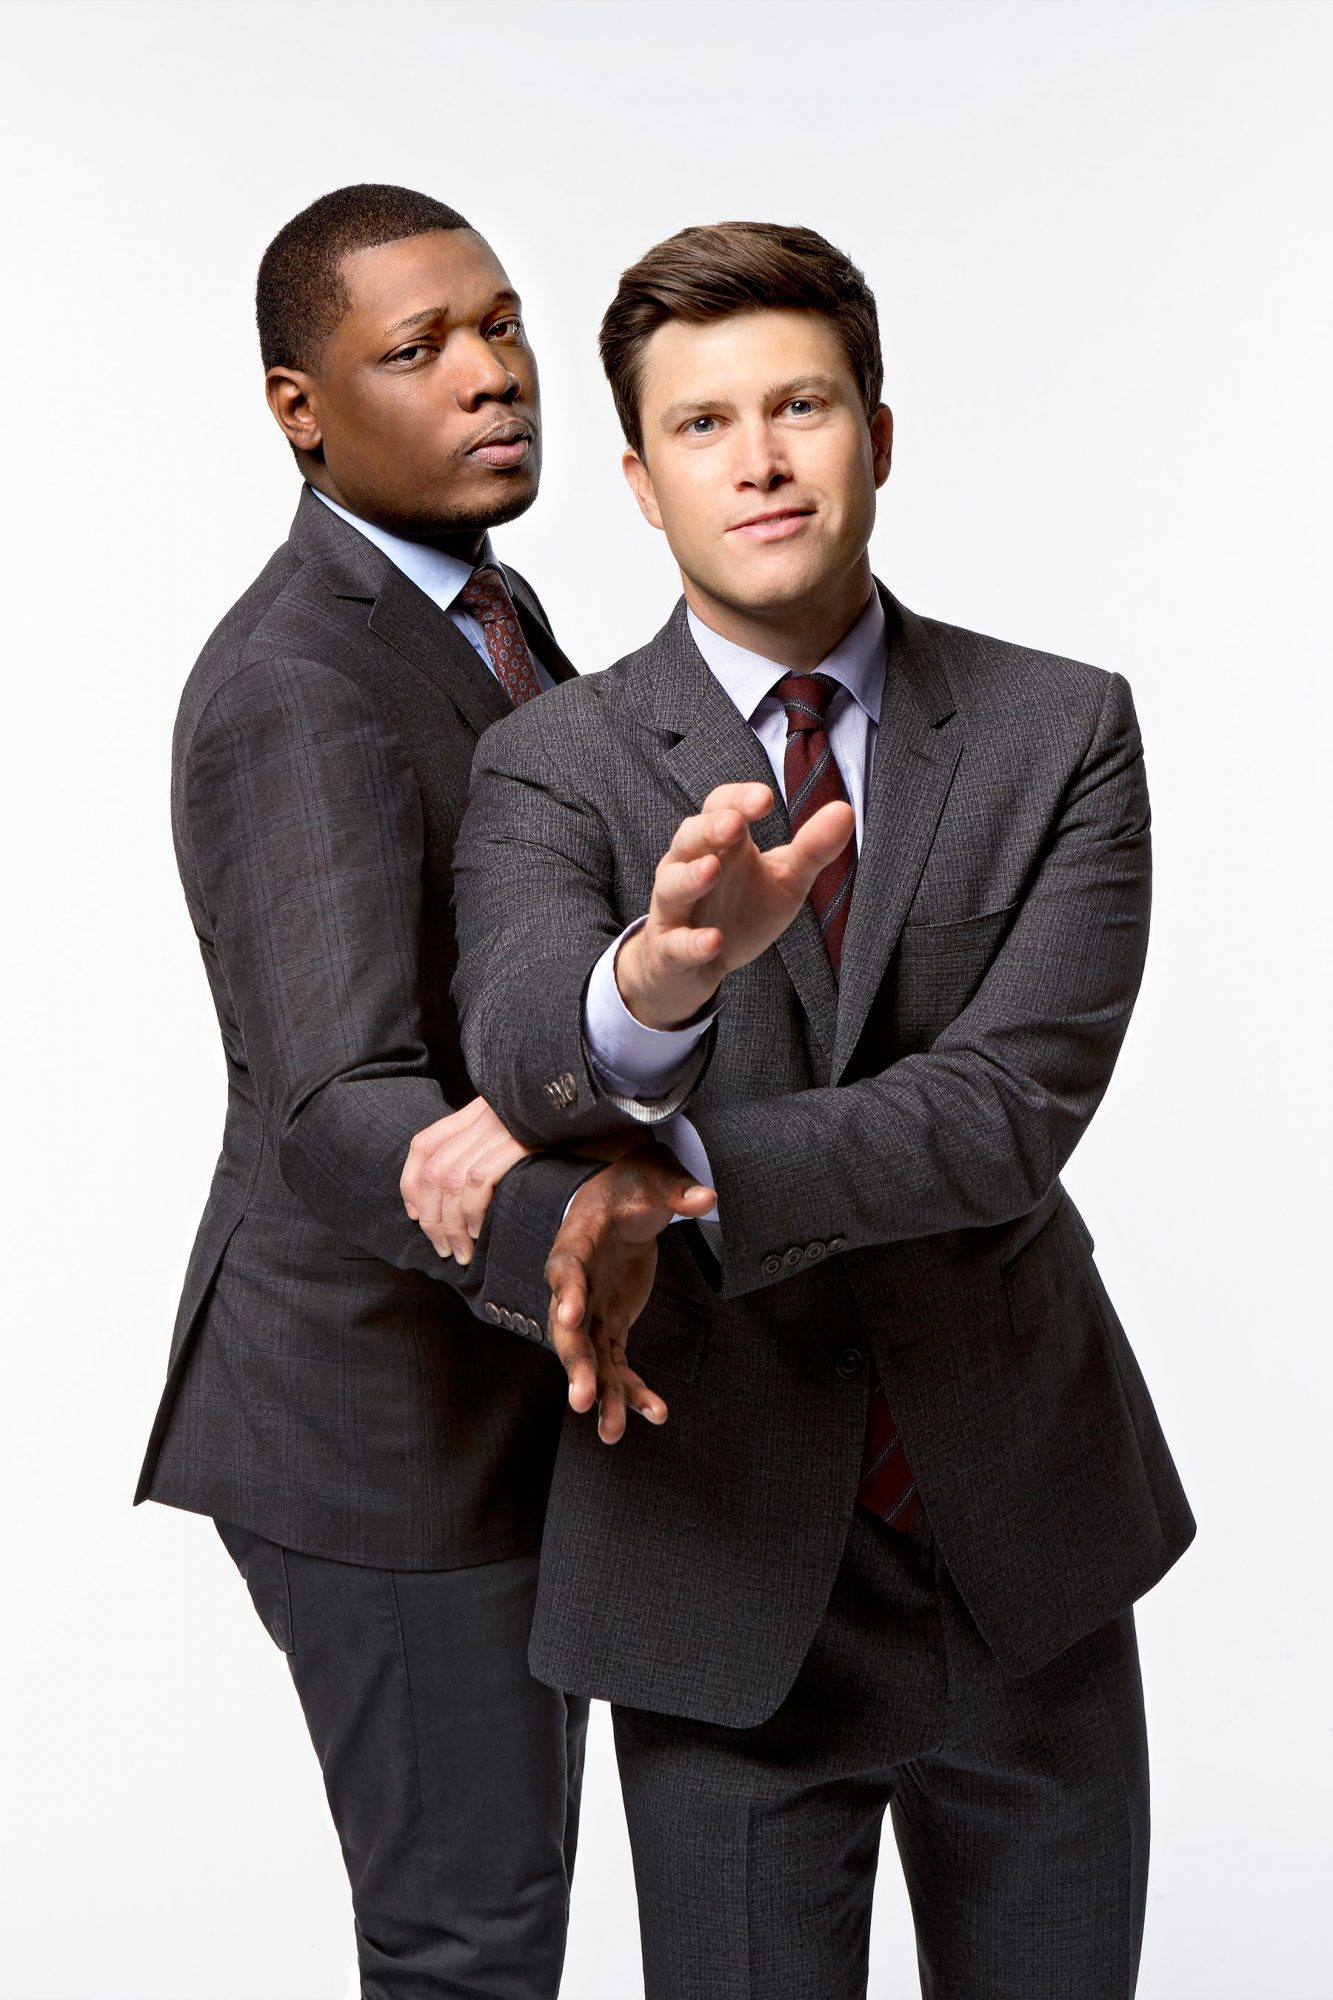 Saturday Night Live: Weekend Update - Season 1